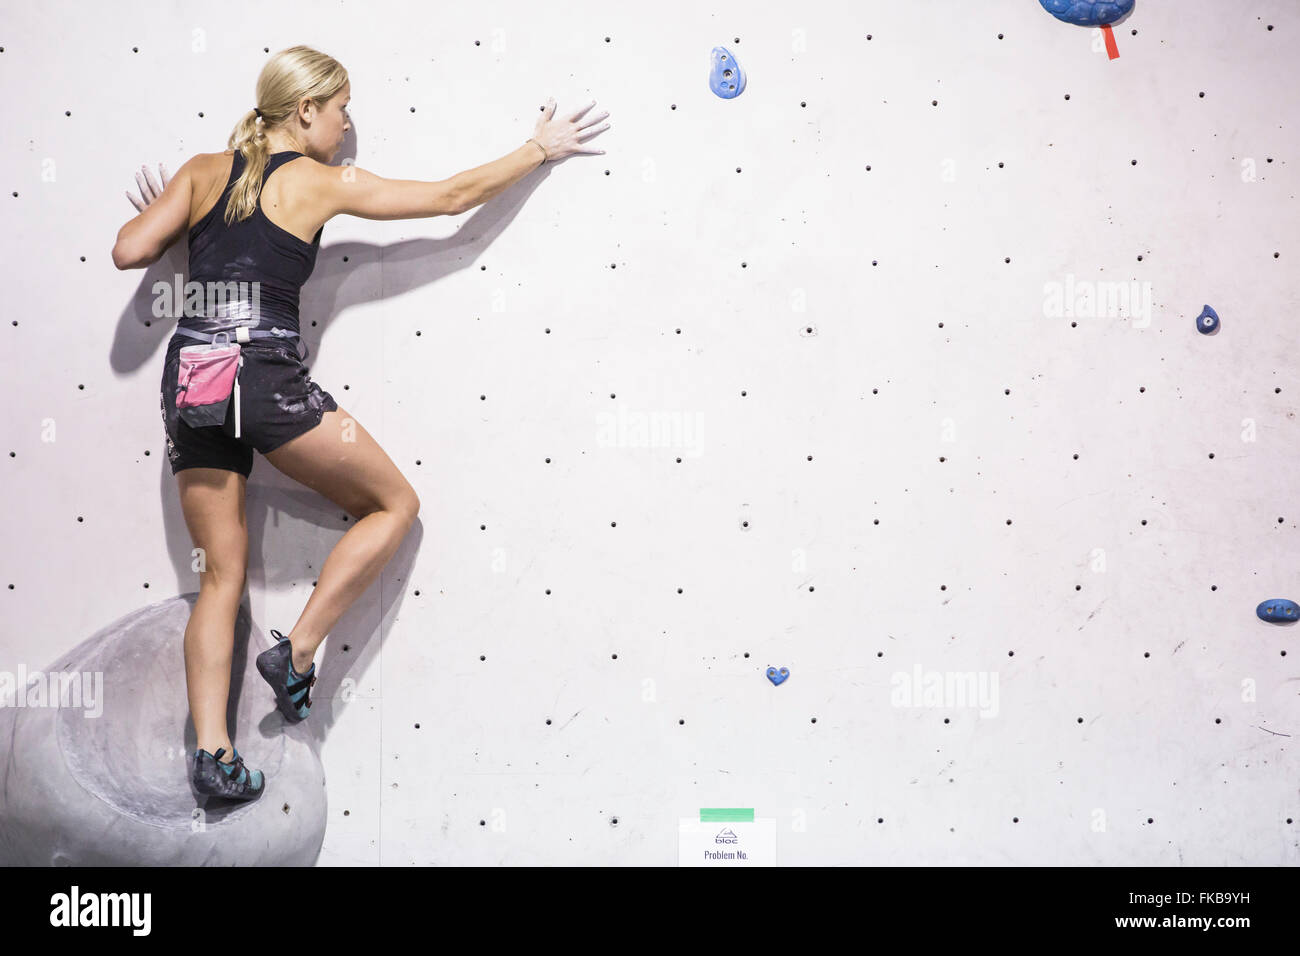 Climbers take part in a bouldering competition at Bloc climbing centre, Bristol. - Stock Image